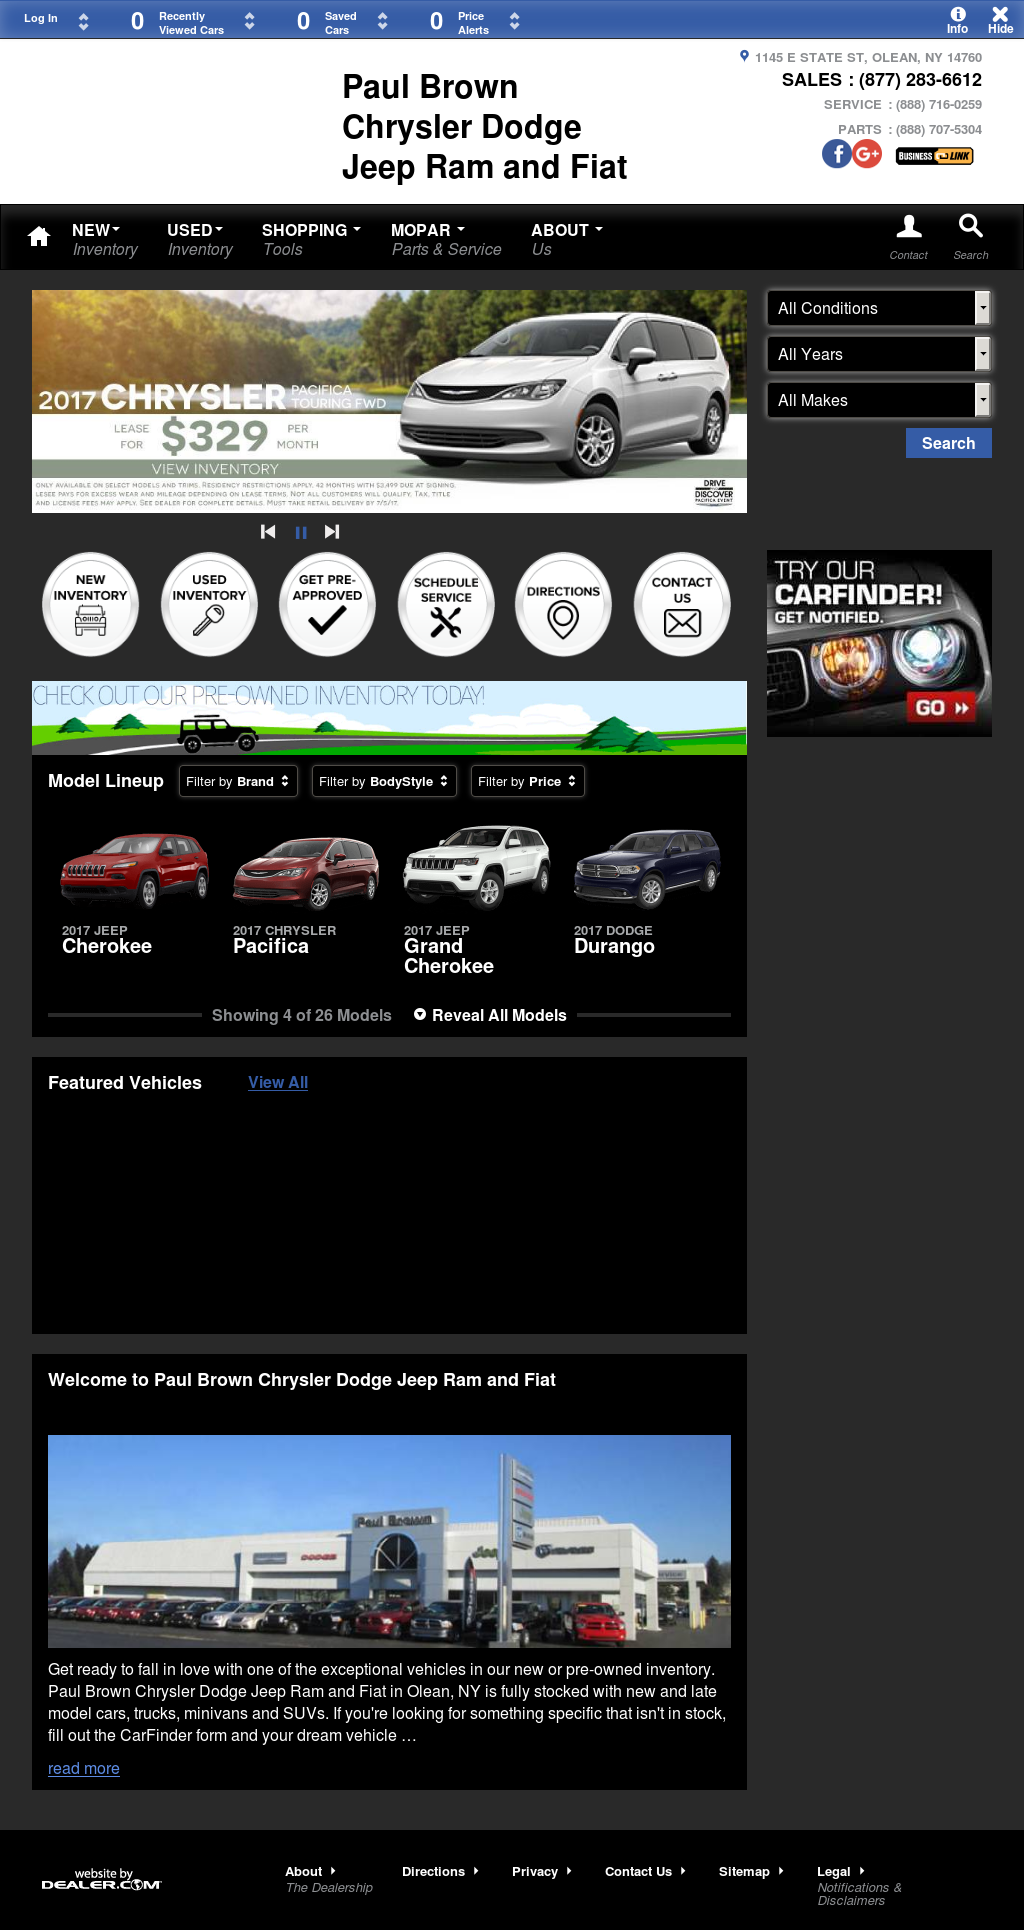 Paul Brown Chrysler Dodge Jeep And Ram petitors Revenue and